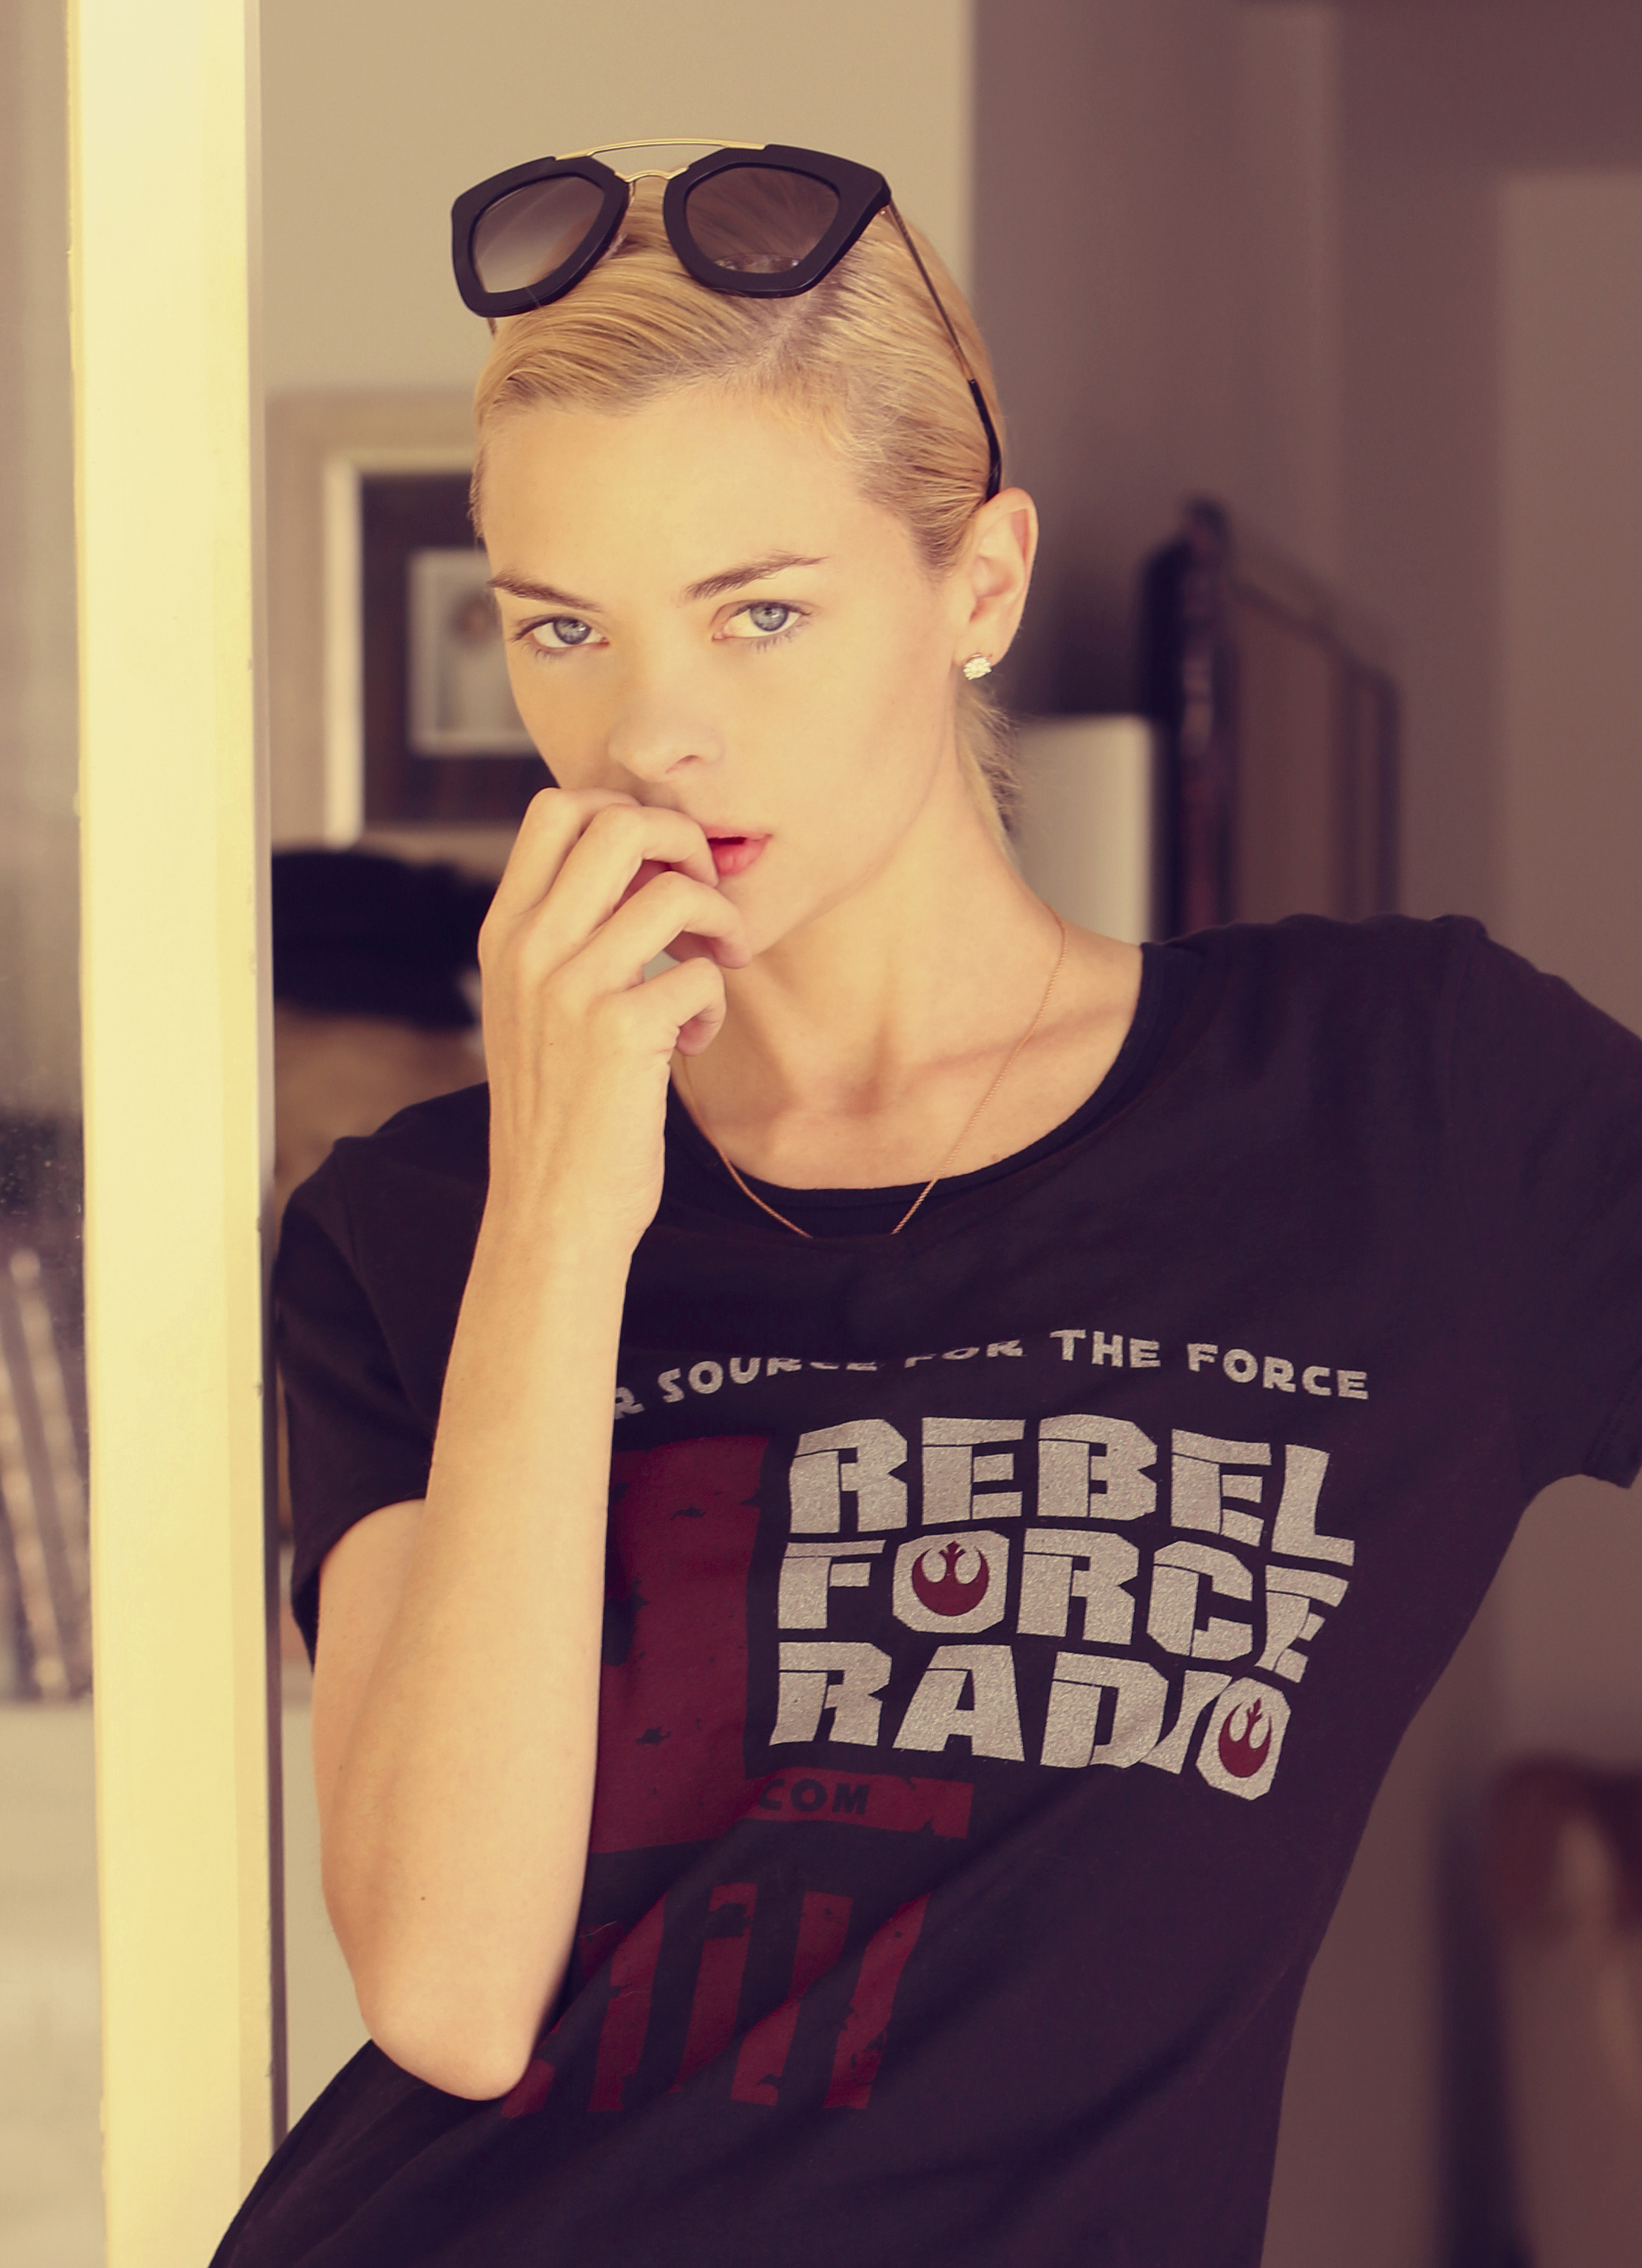 Actress/Supermodel Jaime King looks amazing in her RFR tee!